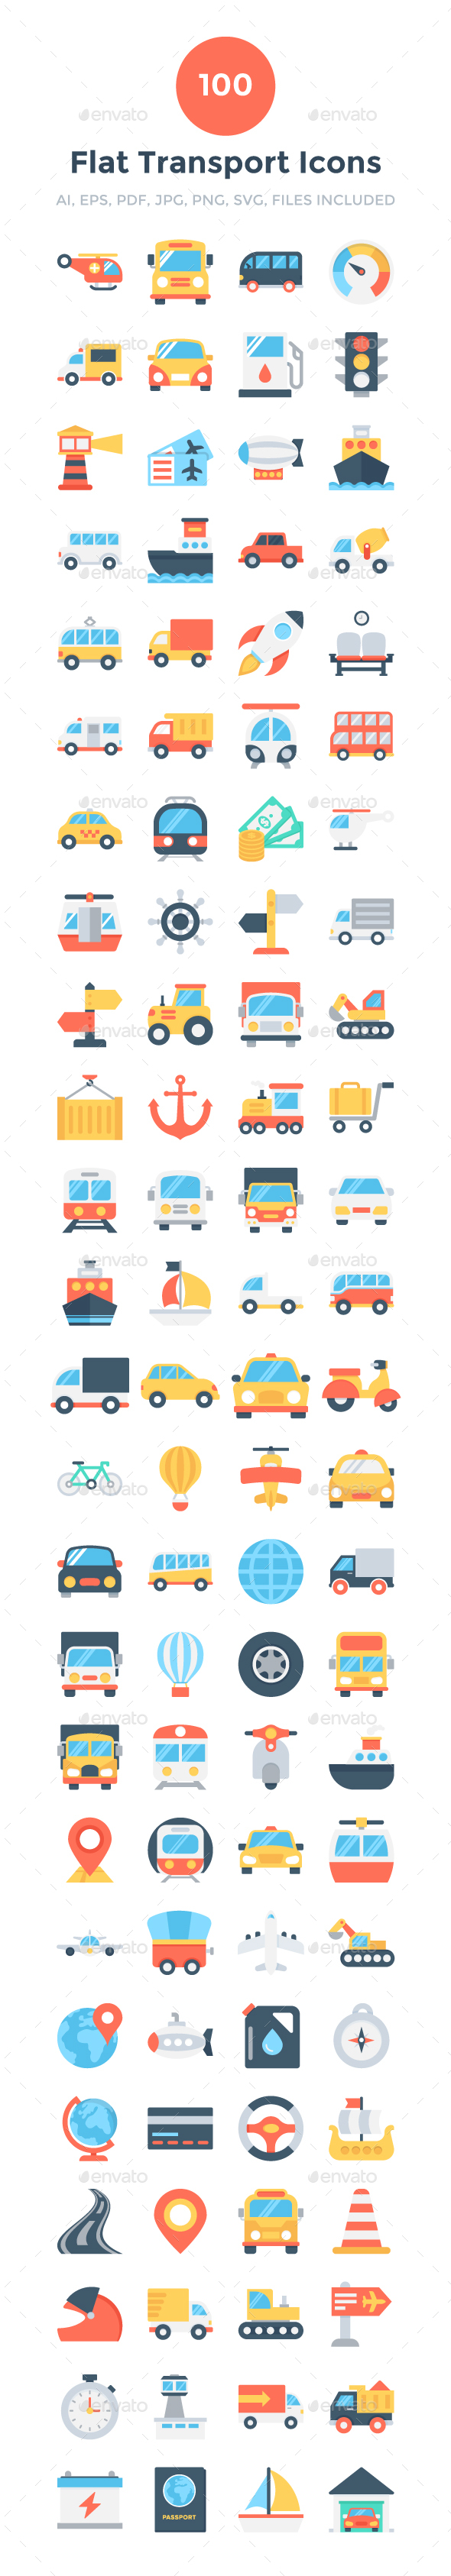 100 Flat Transport Icons - Icons